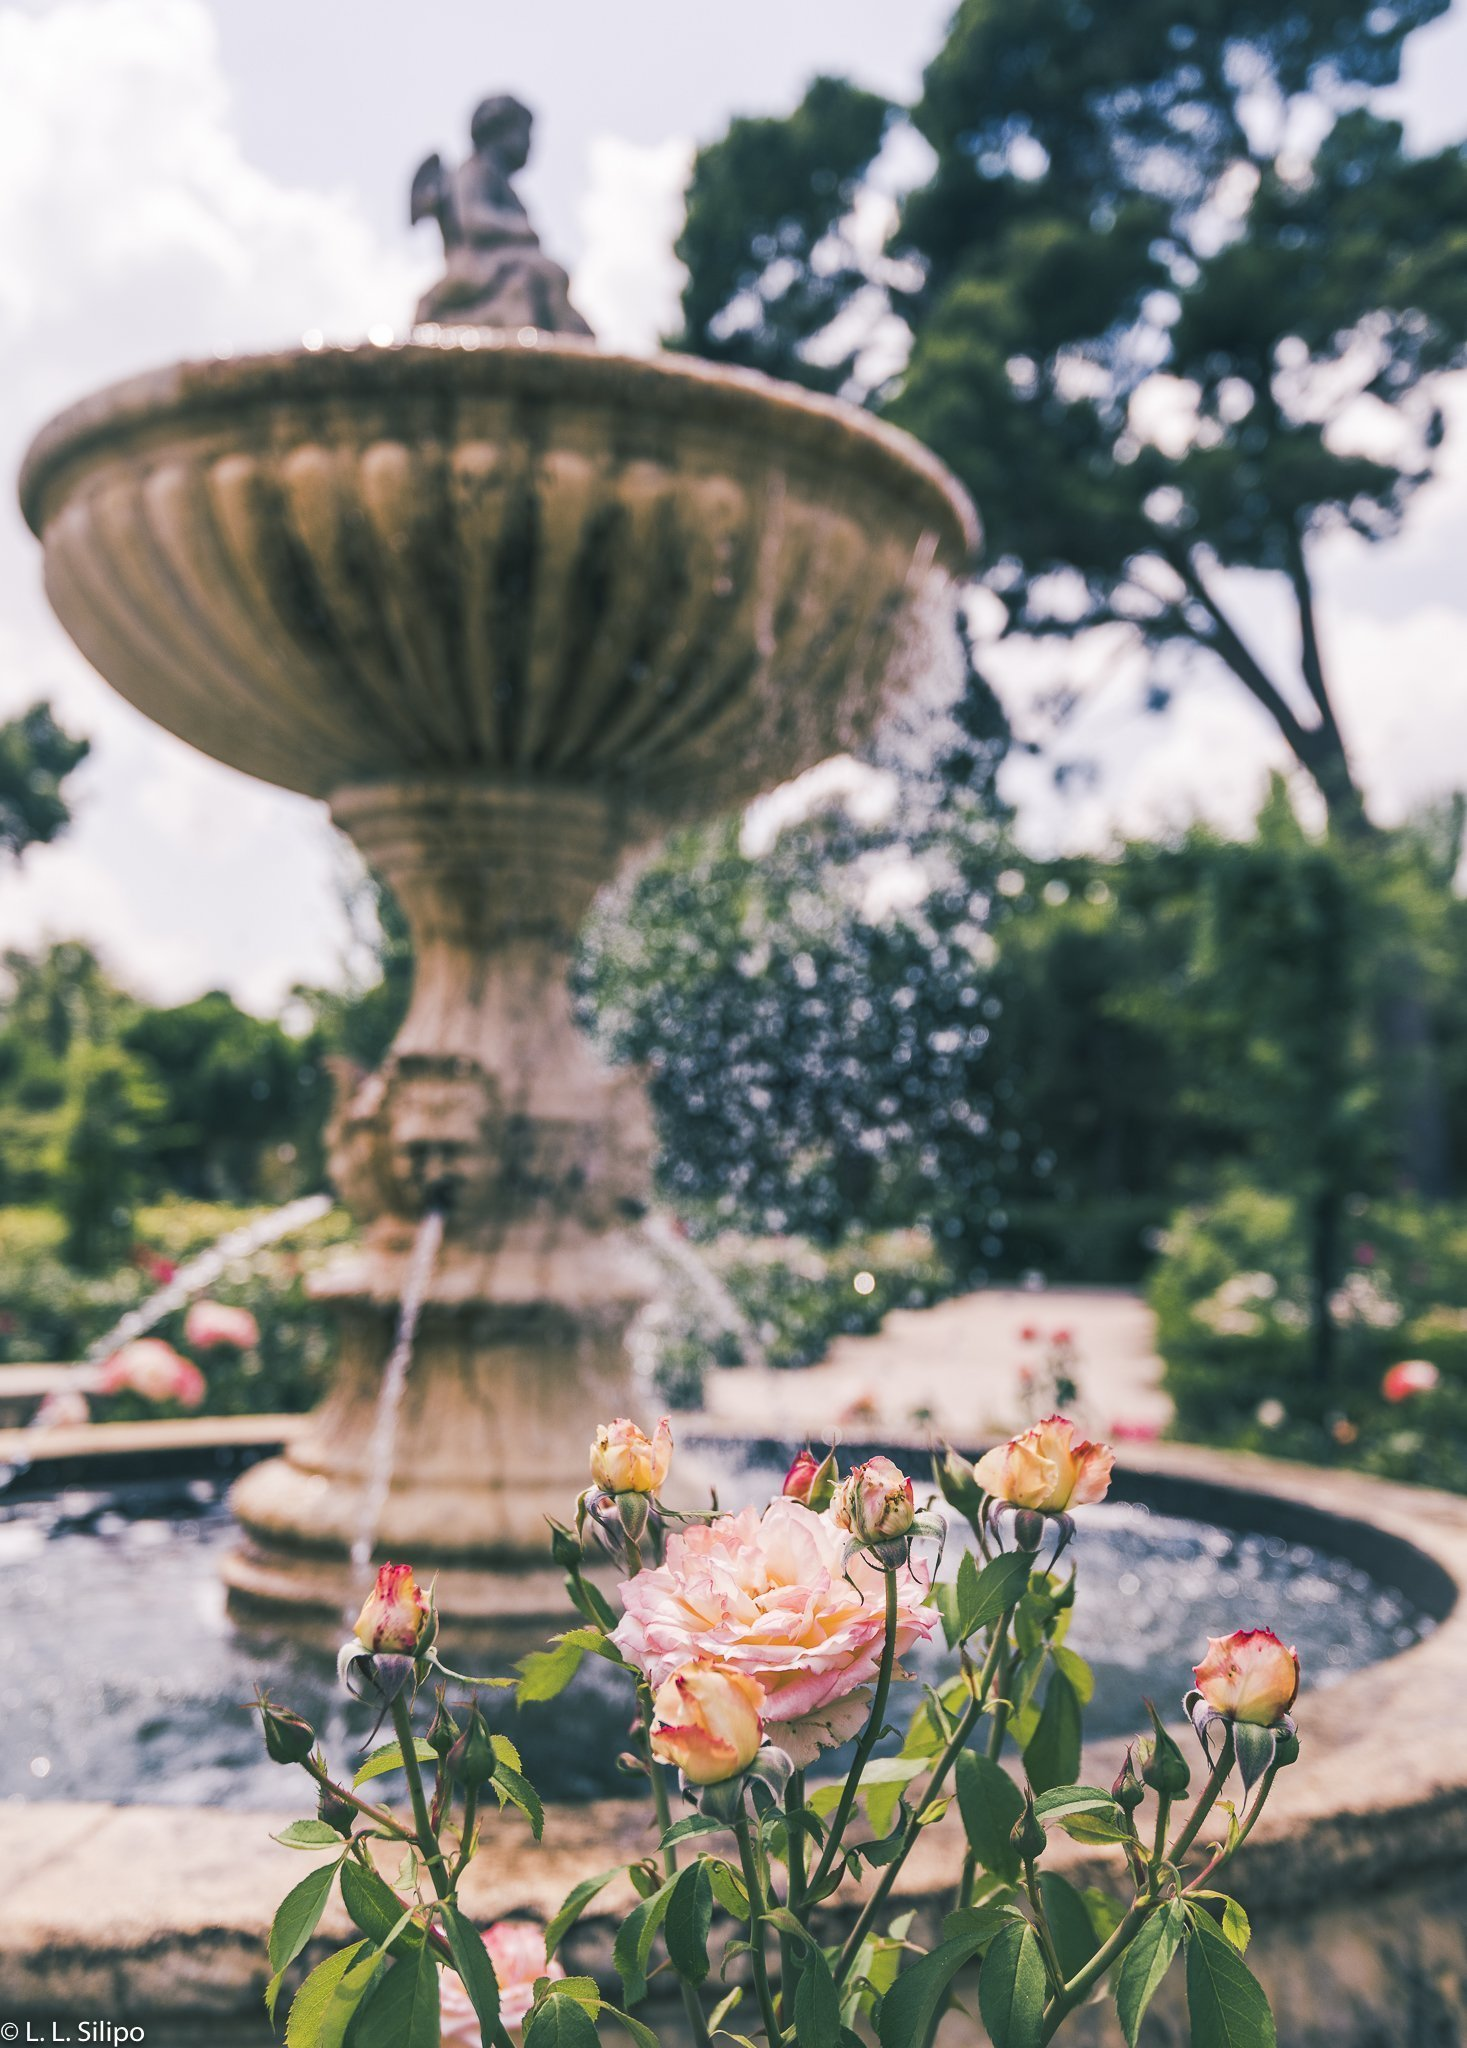 Madrid, Spain, beautiful, beauty, botanical, color, colorful, flora, floral, flower, garden, green, landscape, nature, no person, outdoors, park, rose, roses, spanish, summer, travel, water